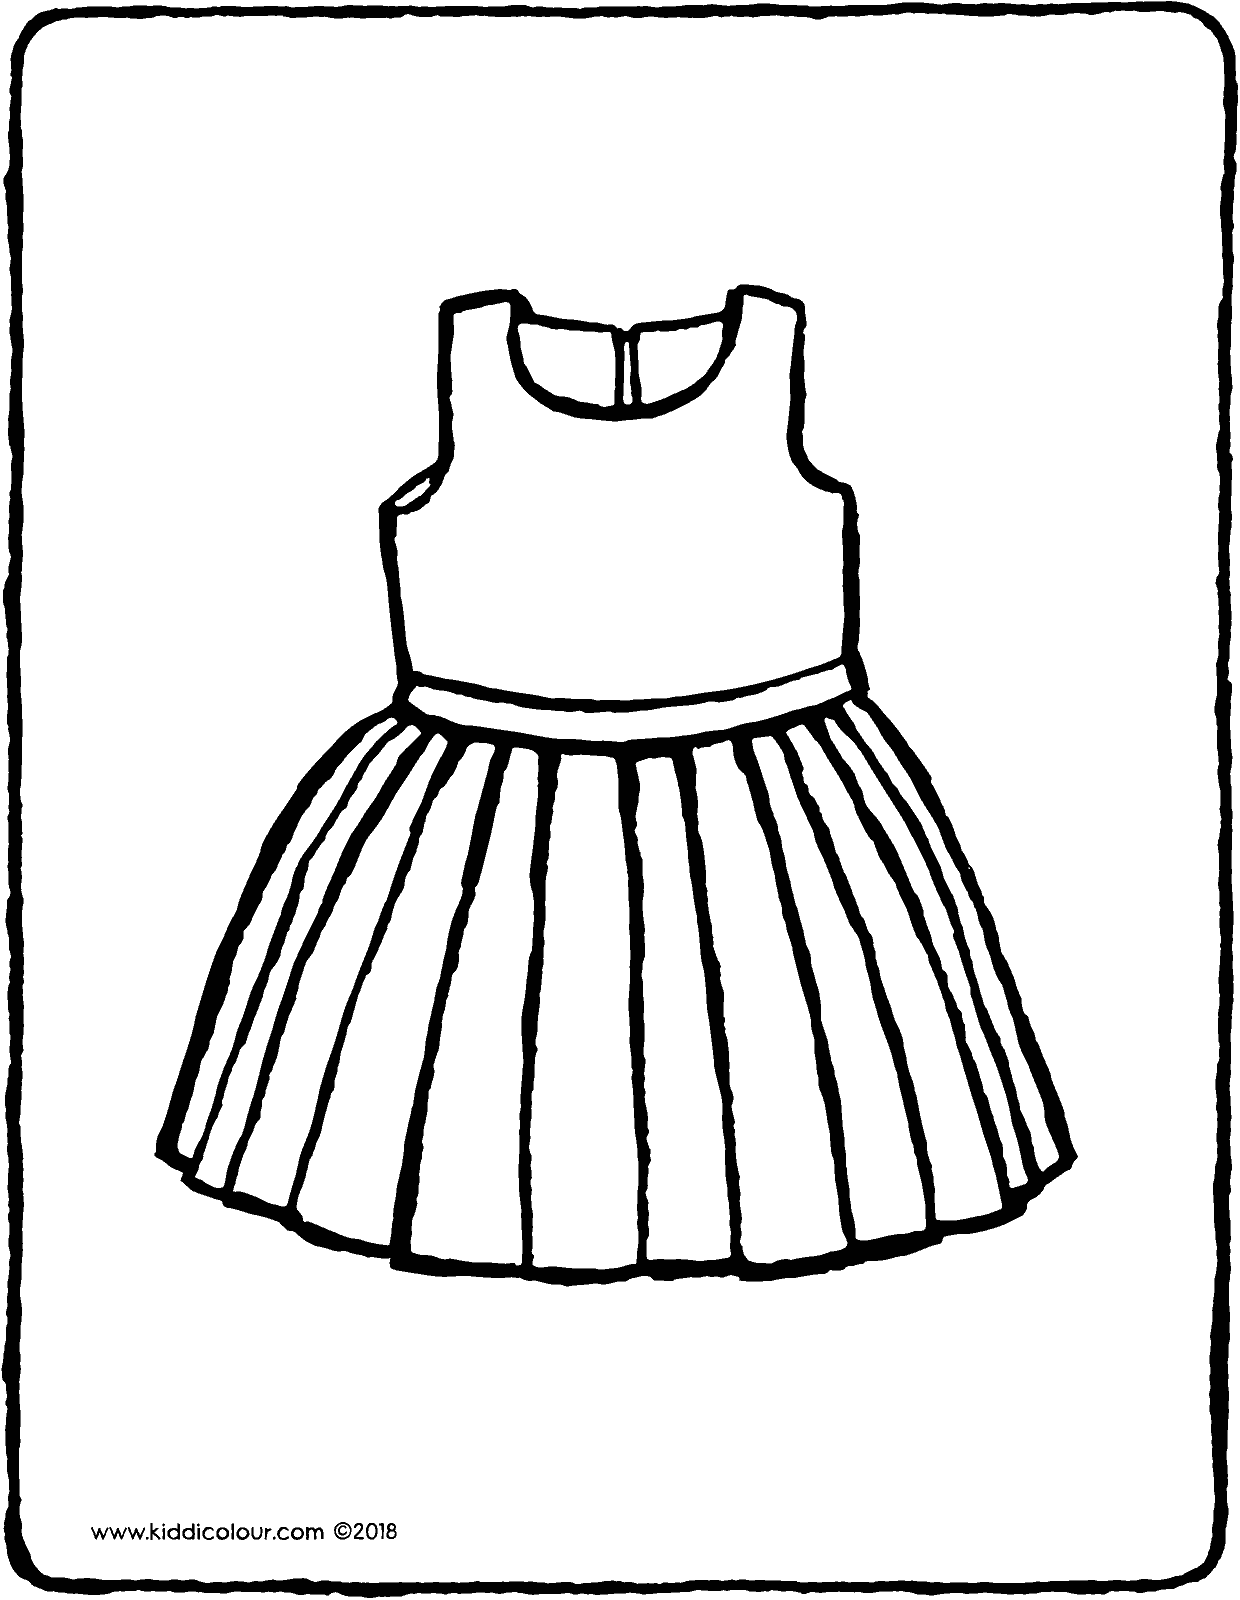 coloring page dress ladies dress coloring pages download free ladies dress dress page coloring